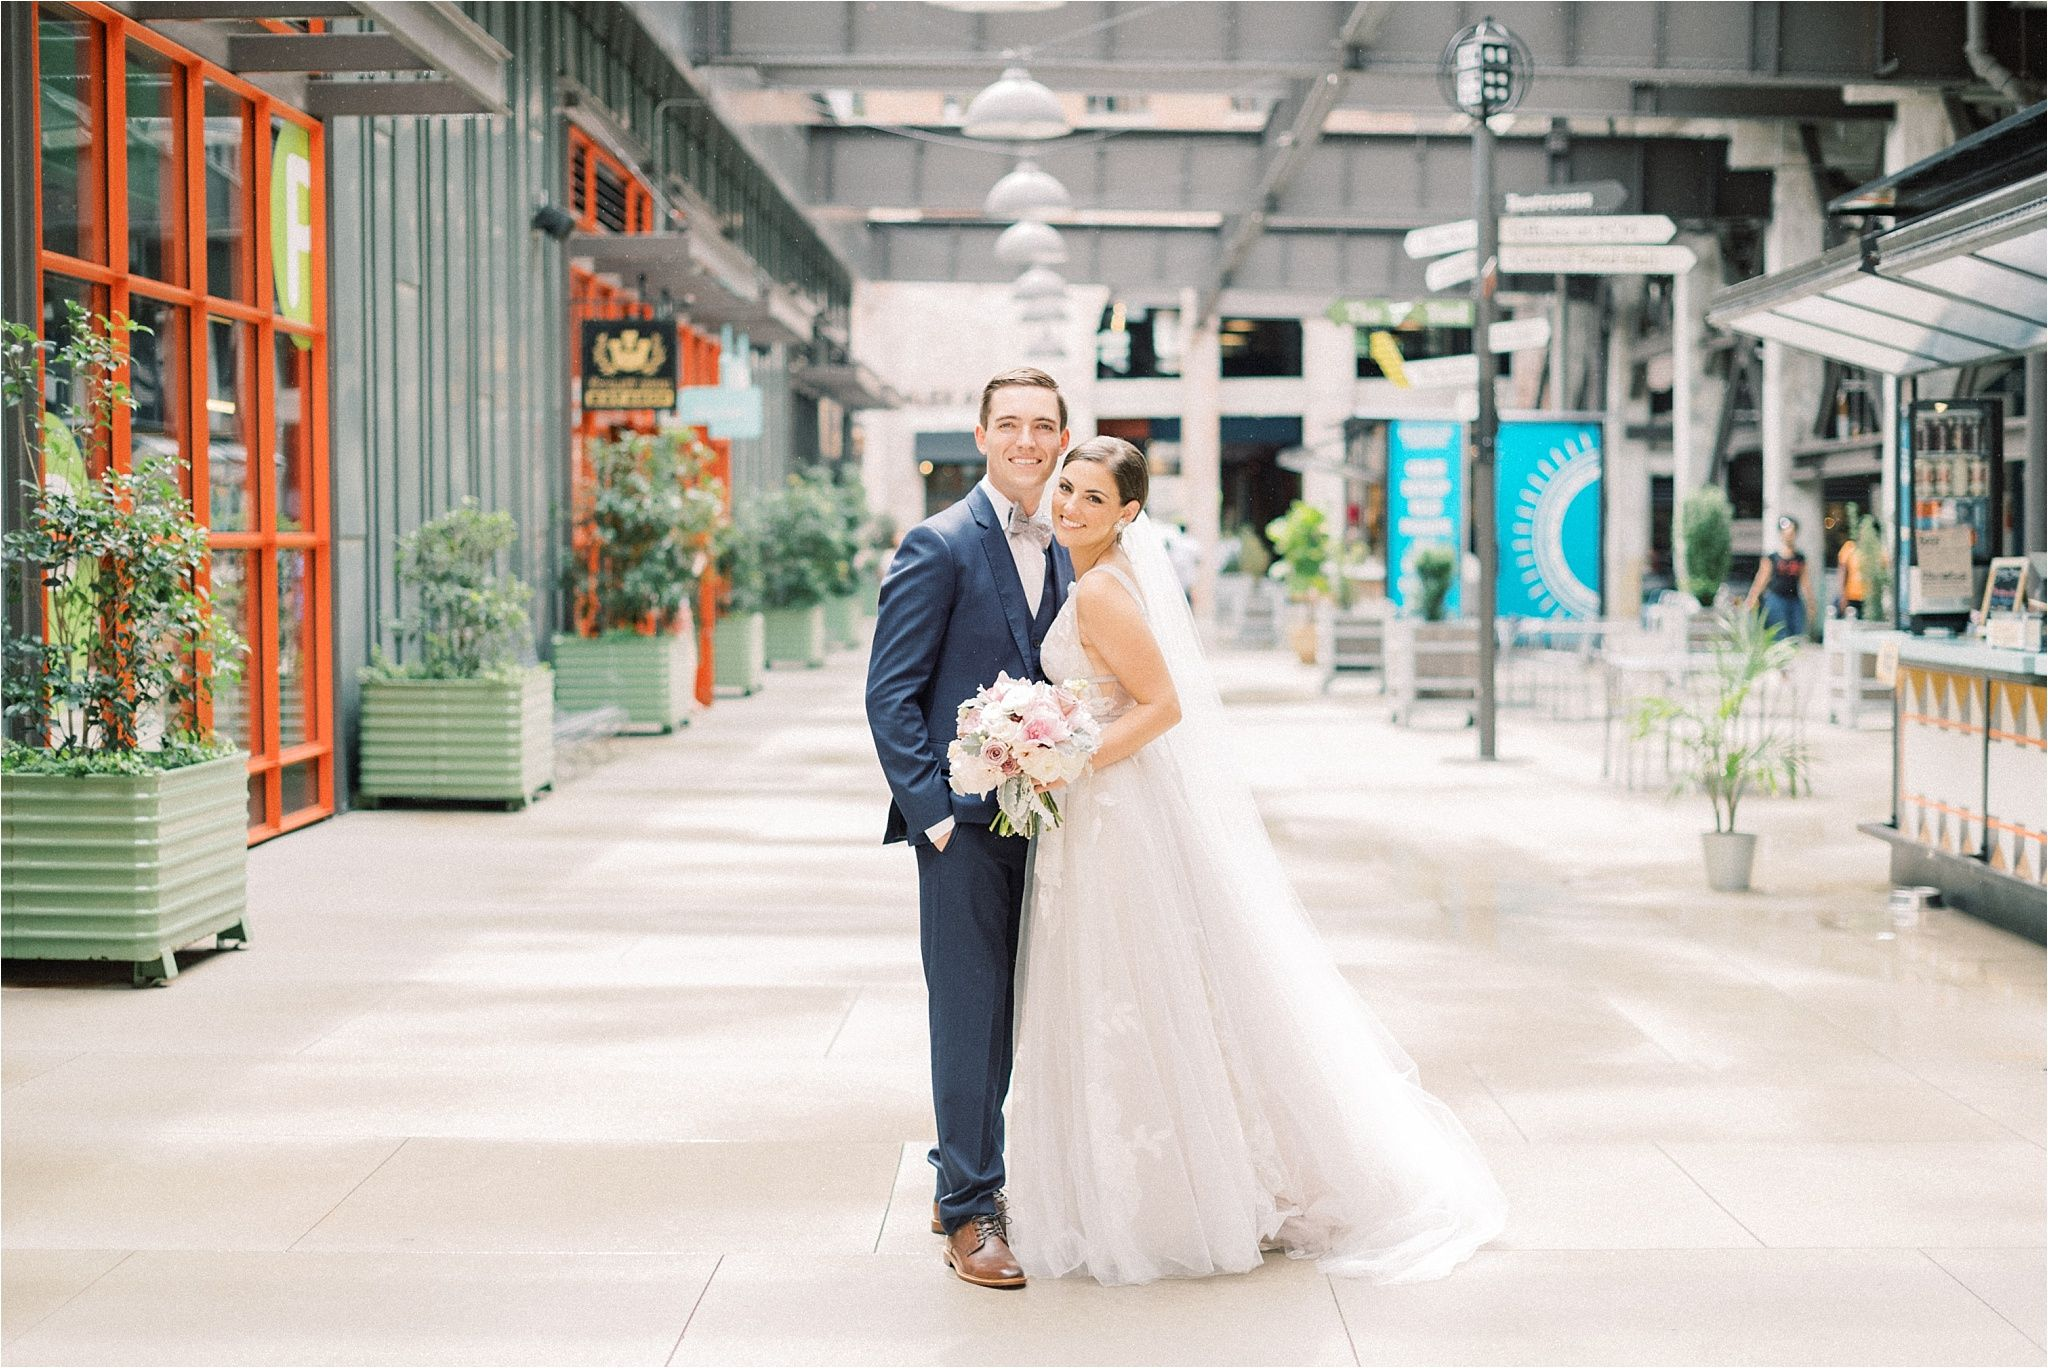 Ponce City Market Roof Top Terrace Atlanta Ga Wedding Bhldn Hearst Gown Navy Groomsmen Suit With Bowtie Simple Boho Modern City Market Ponce Wedding Moments